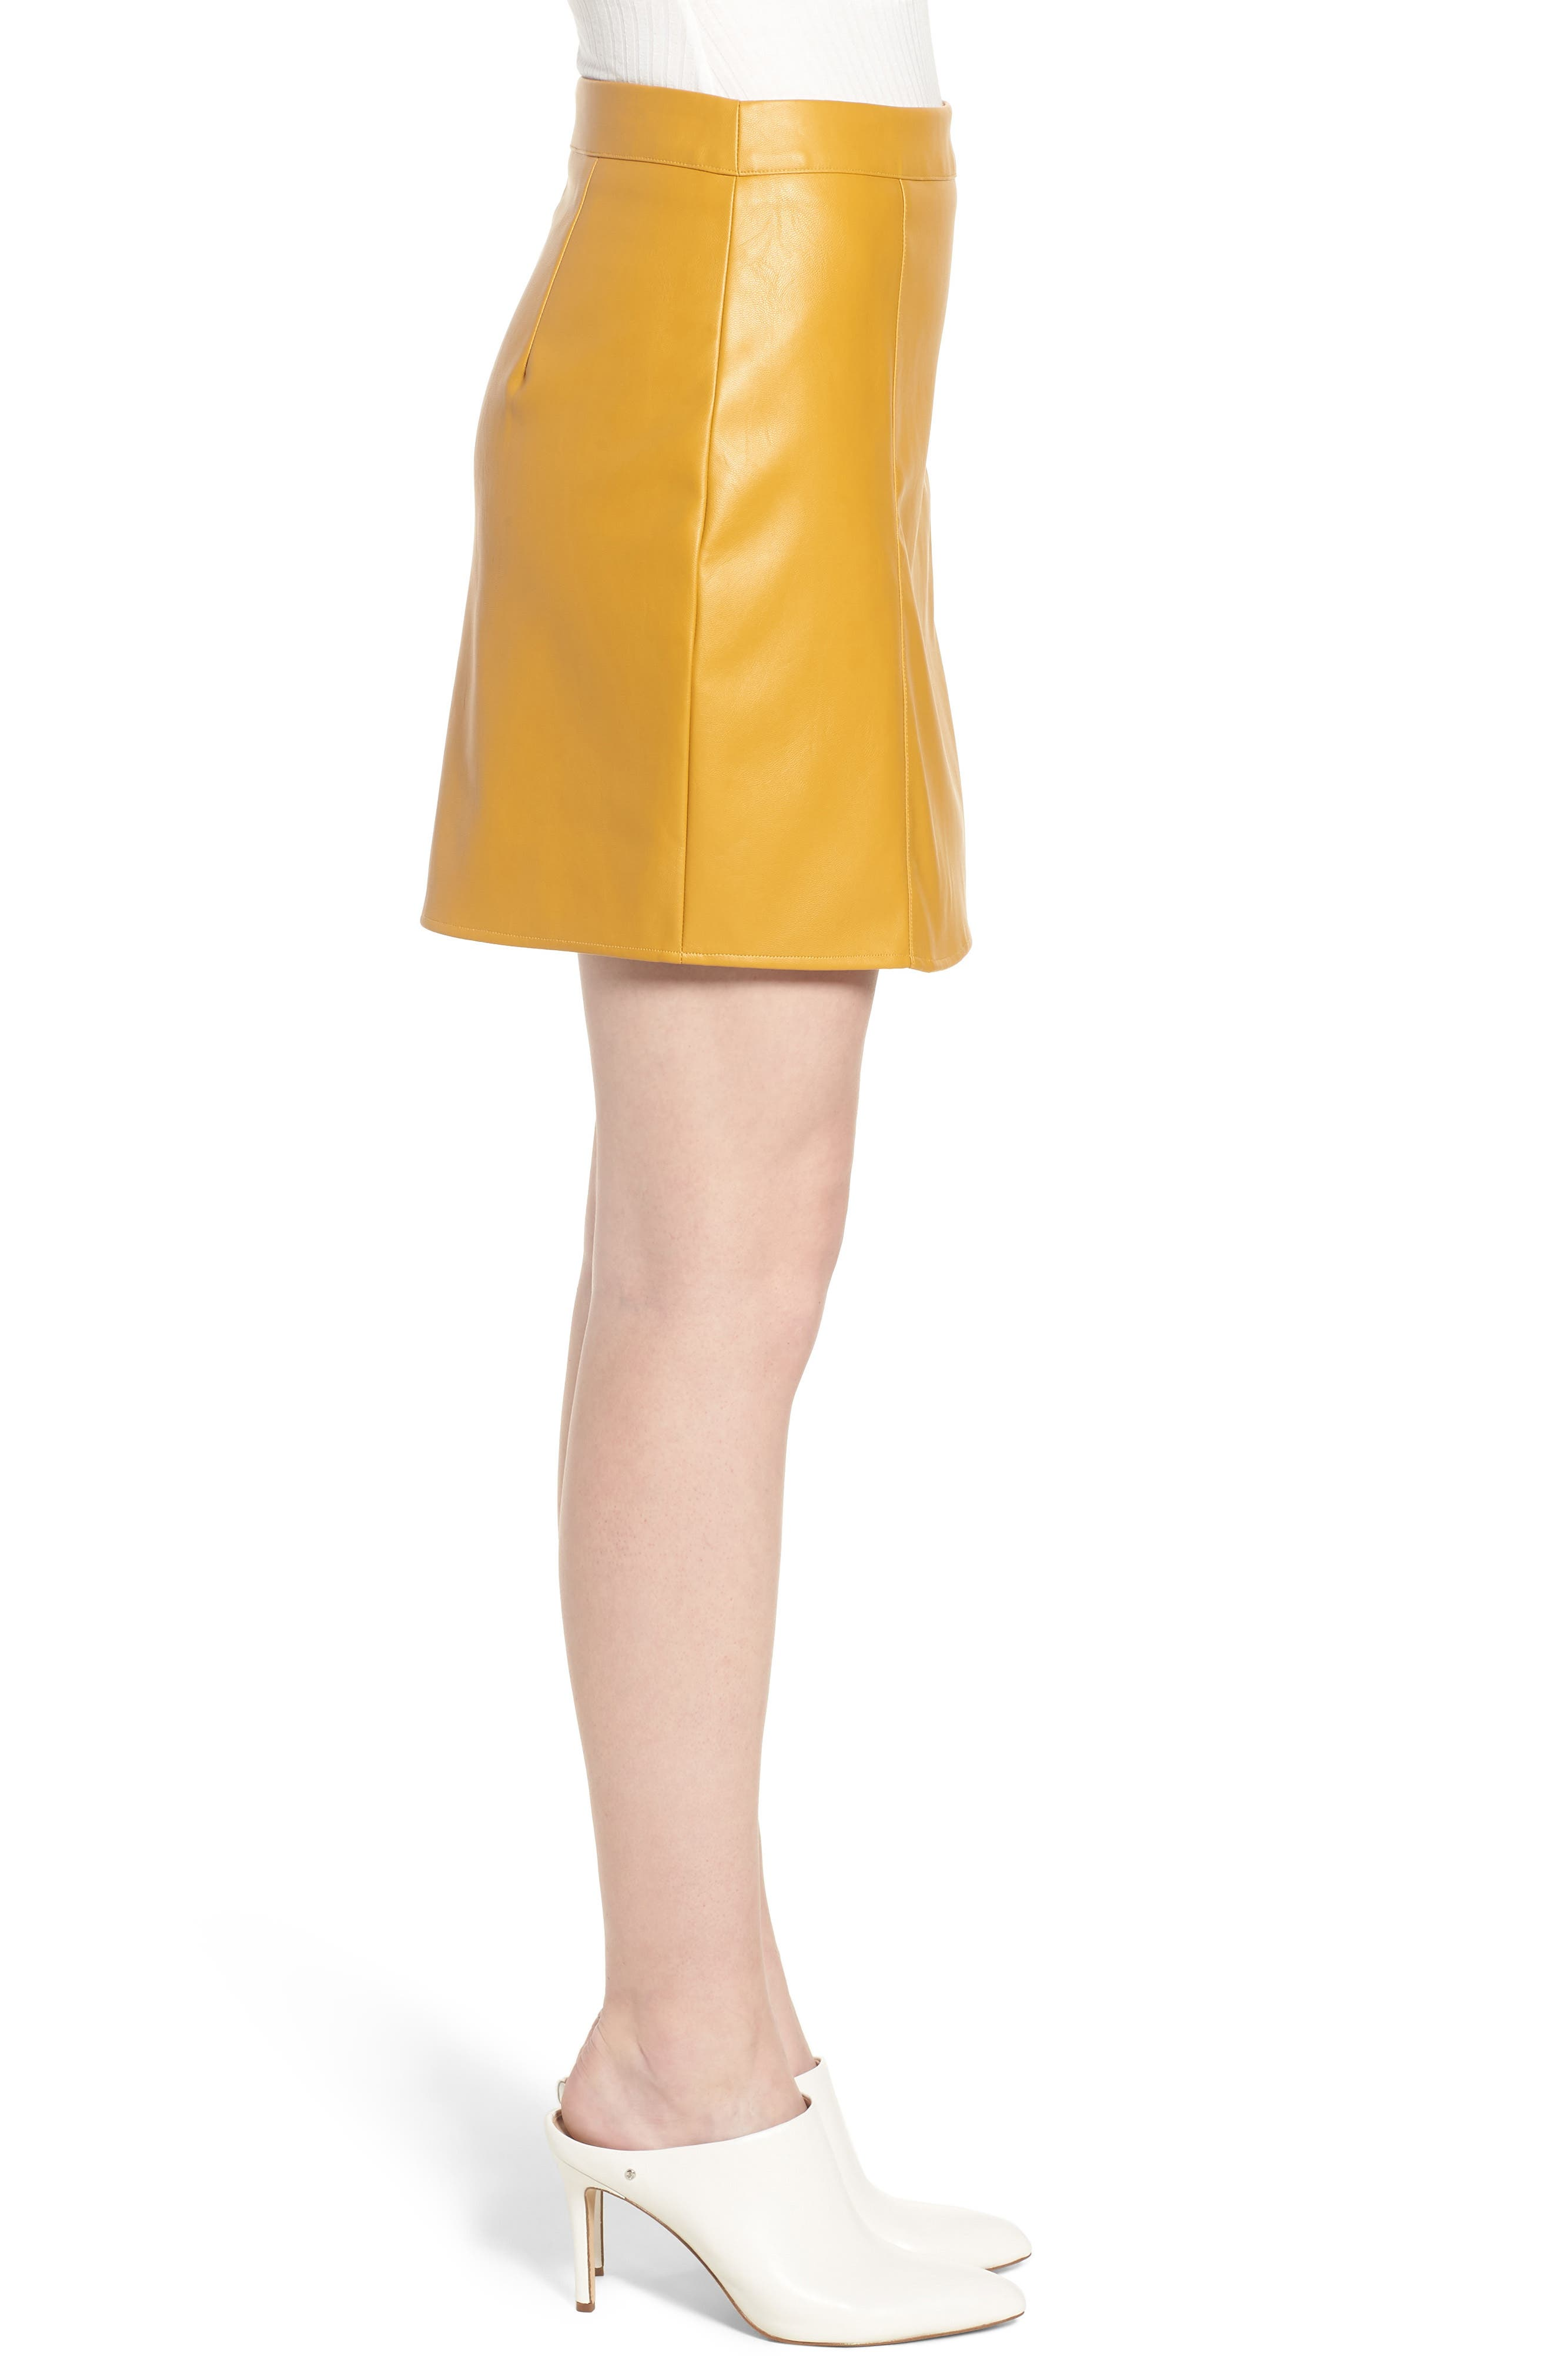 Bishop + Young Faux Leather Miniskirt,                             Alternate thumbnail 3, color,                             MUSTARD